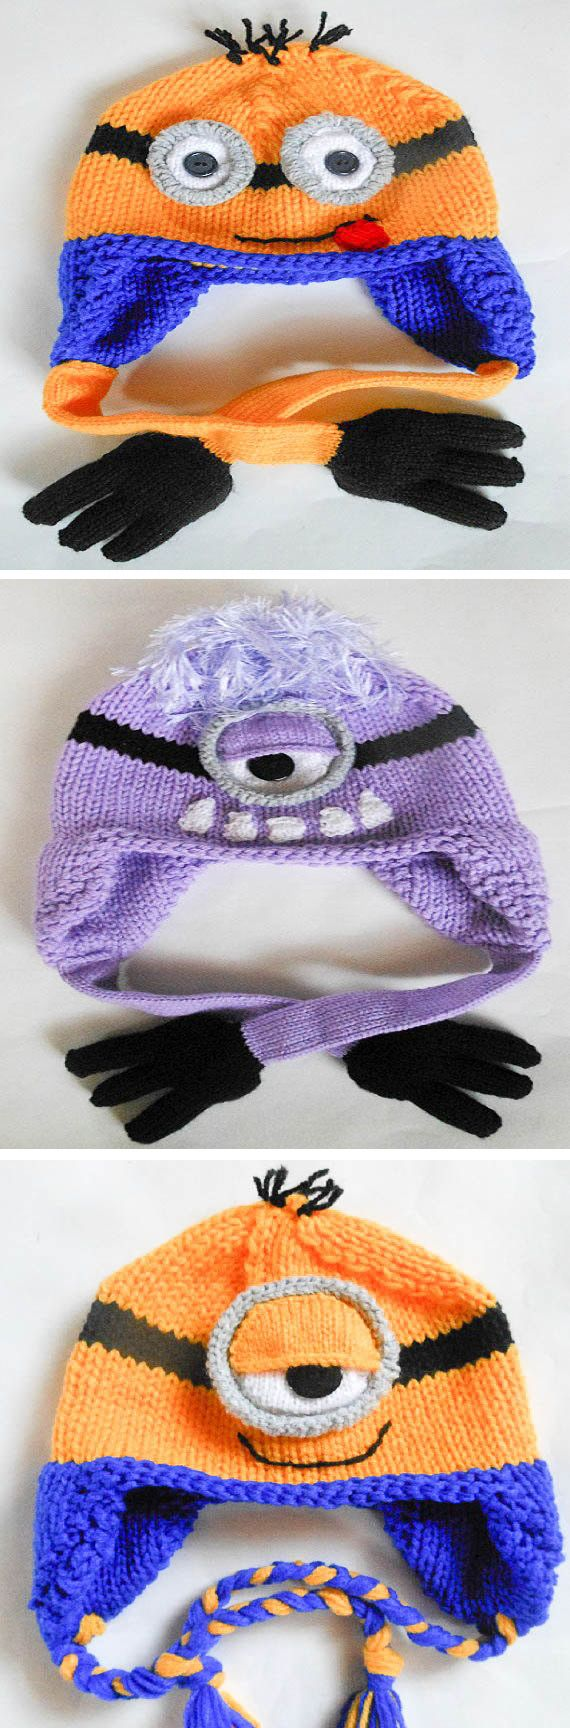 Knitting patterns for Minion Earflap Hats - This pattern comes with instructions for a variety of eyes and mouths as well as adorably cute hands or braided ties to tie the hats.  Pattern is for 2 sizes: 3-8 years, 8-Adult, Etsy affiliate link